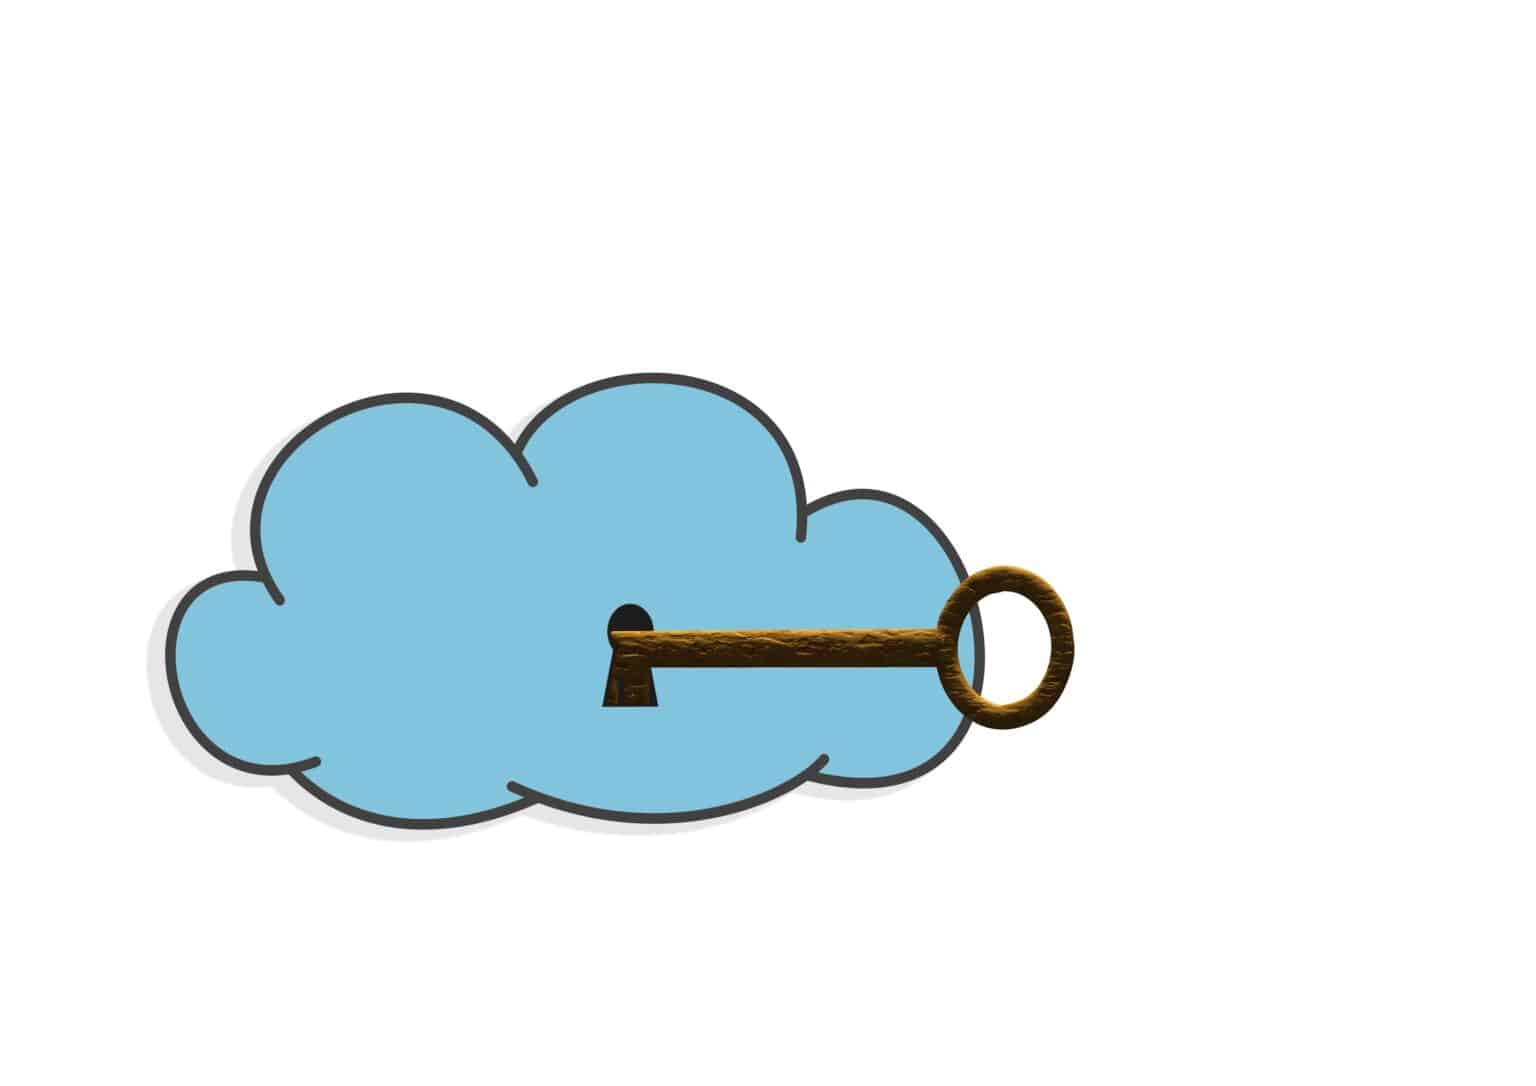 Illustration with a secure cloud  on white background.